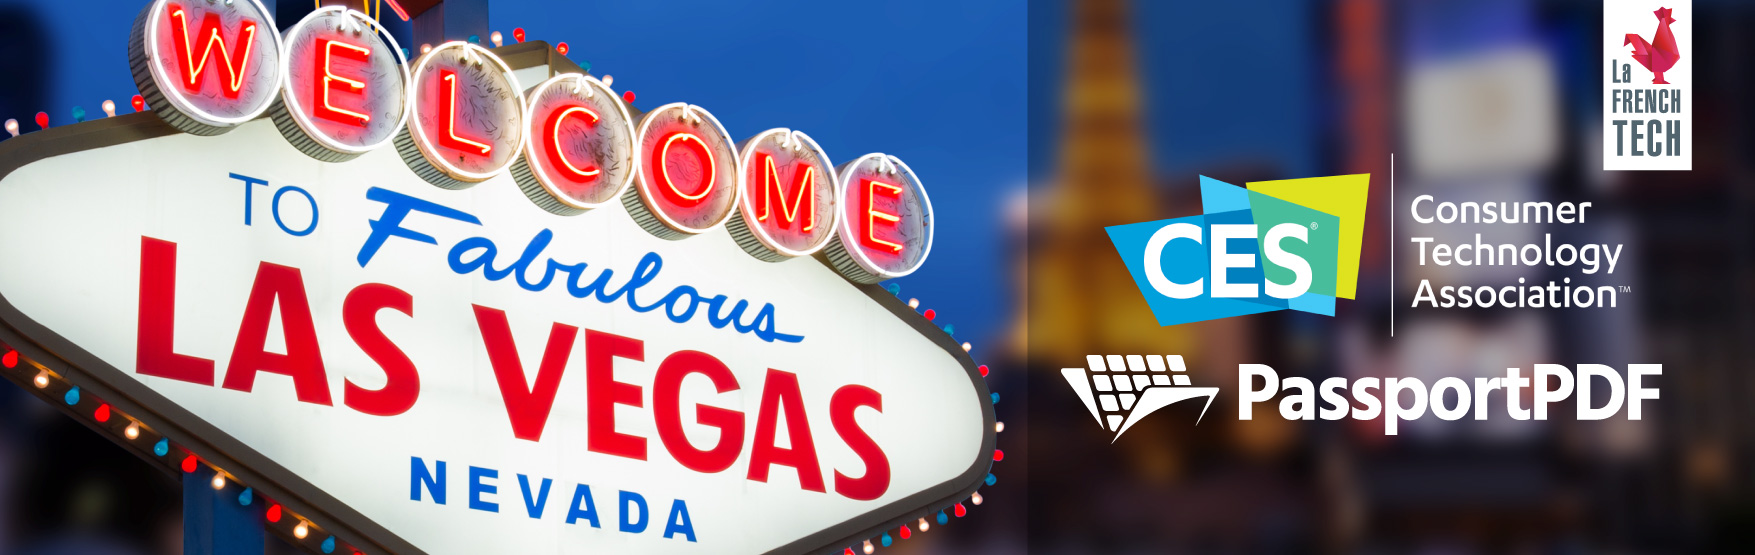 Illustration with logos from the CES Las Vegas, PassportPDF and La French Tech